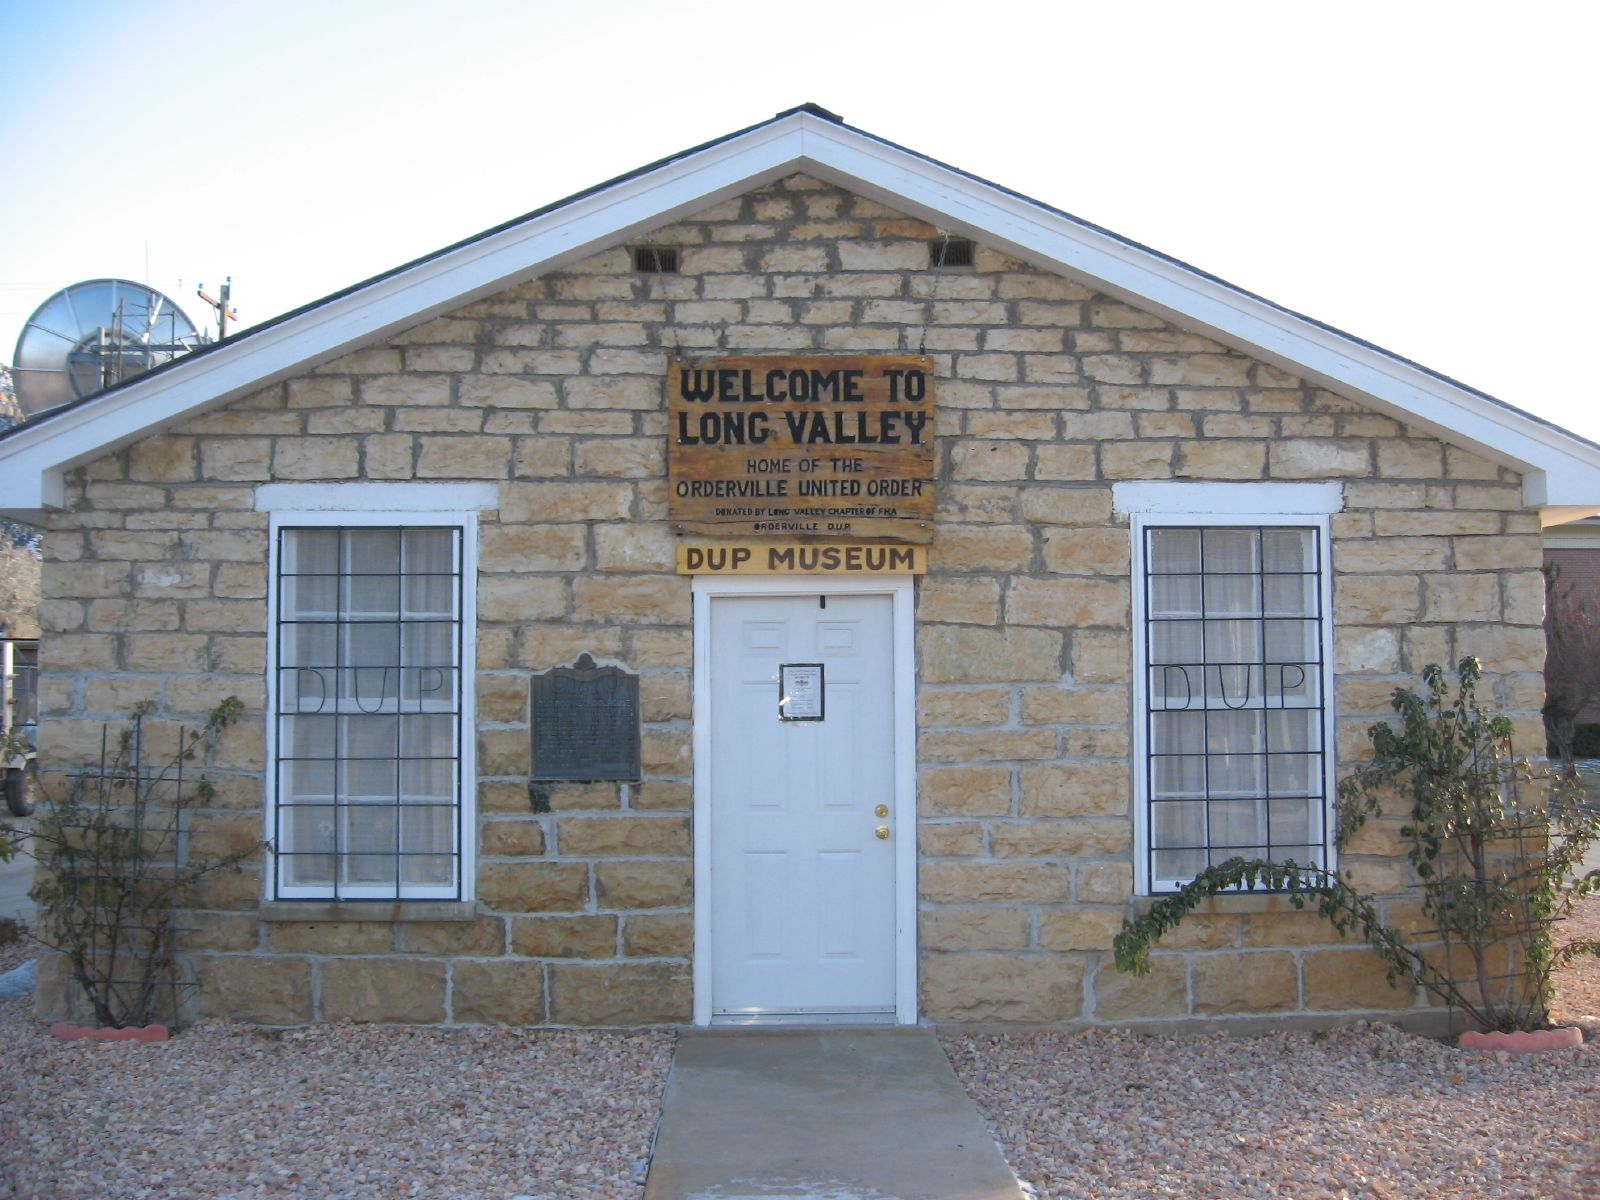 File:Orderville Utah DUP museum.jpg - Wikipedia, the free encyclopedia